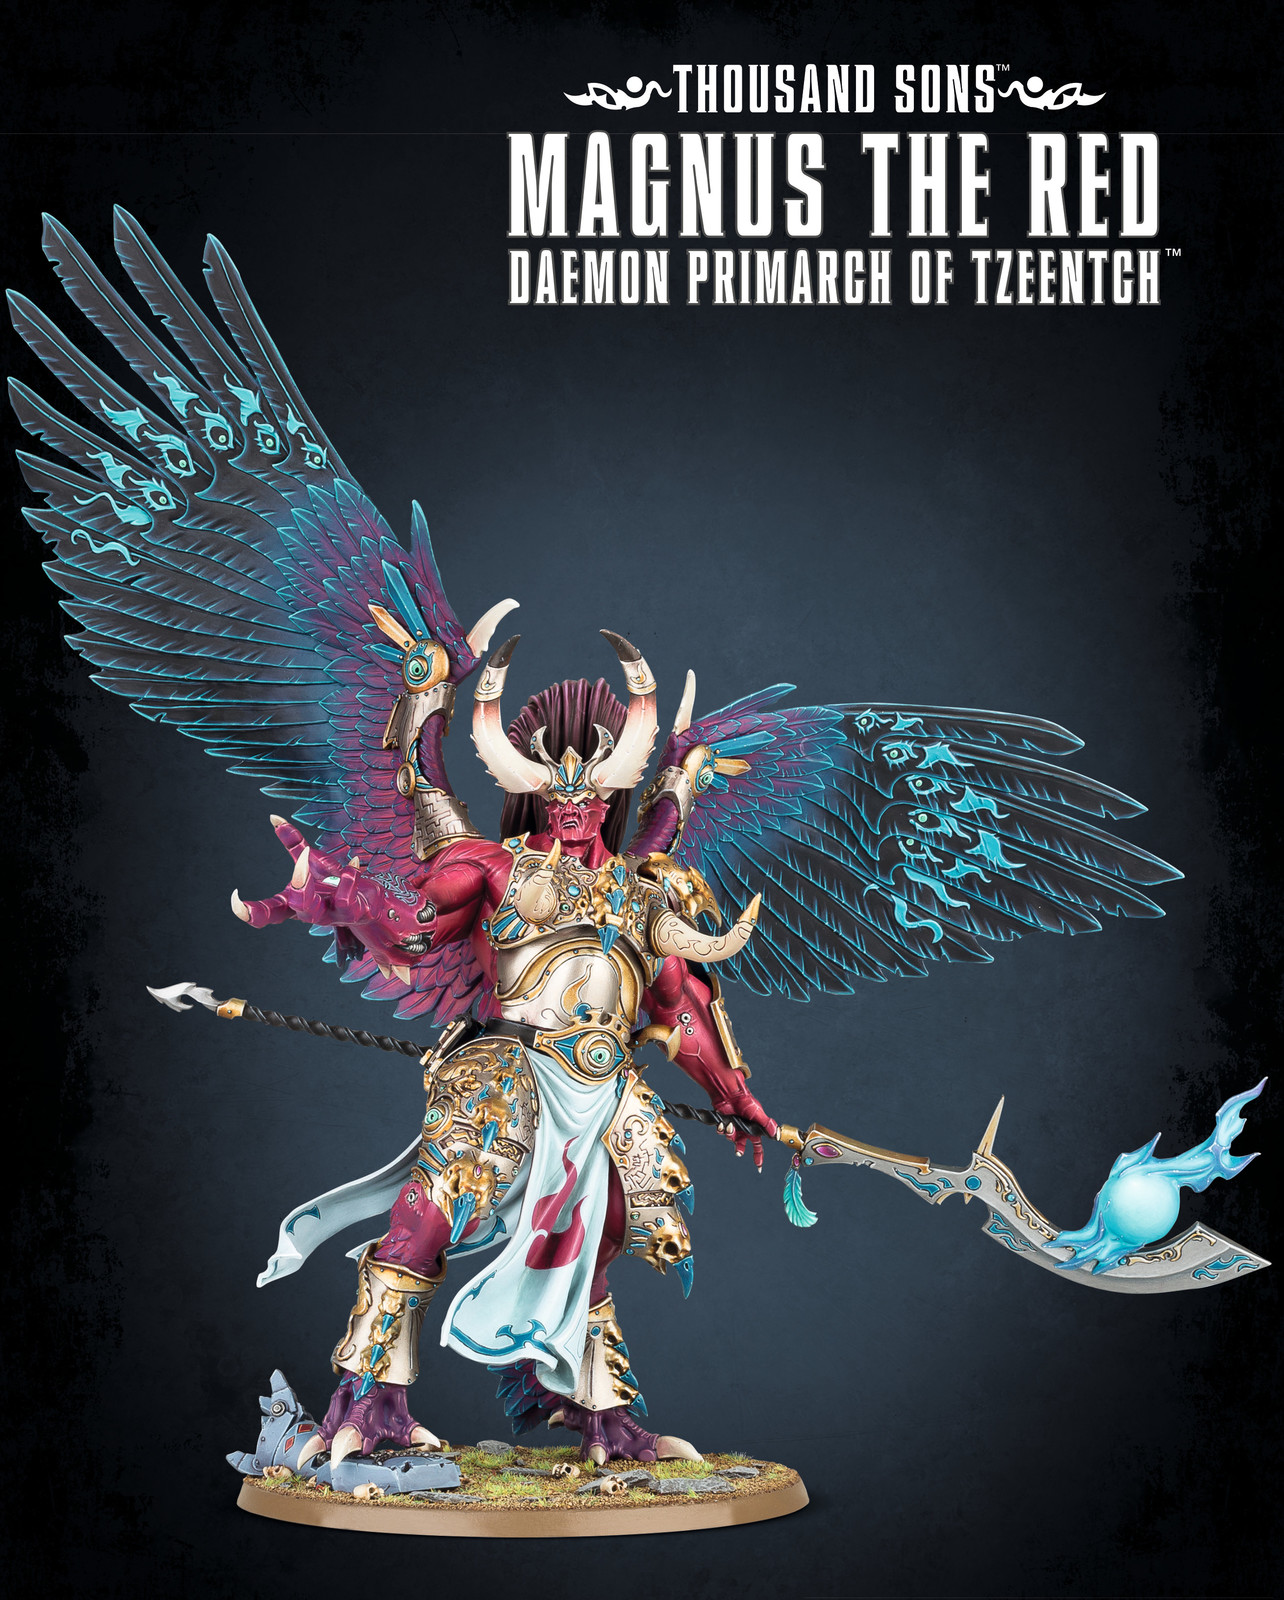 Warhammer 40,000 Thousand Sons Magnus the Red image